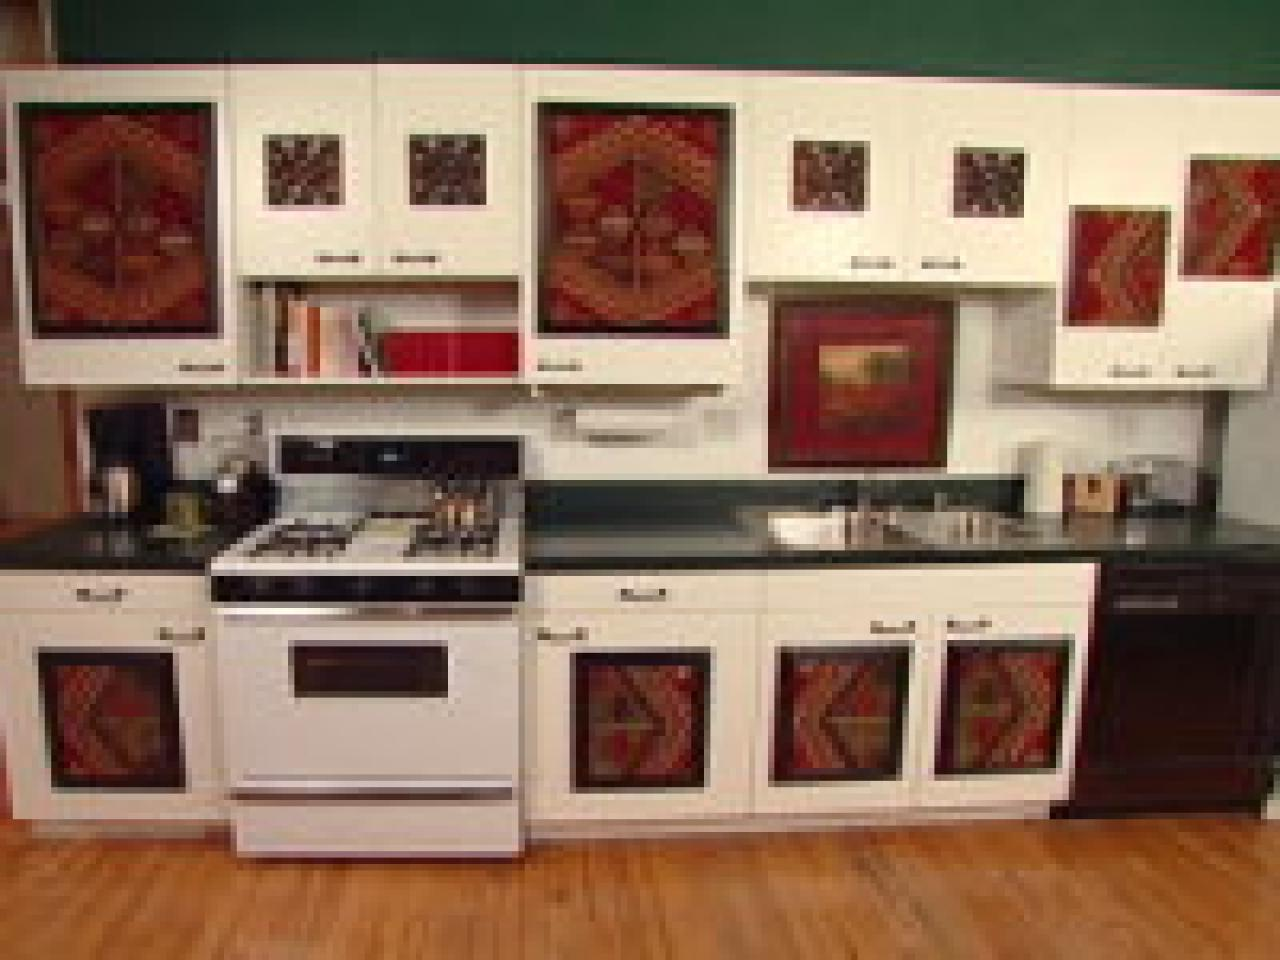 kitchen cabinet facelift ideas kitchen cabinet ideas Kitchen cabinet facelift ideas